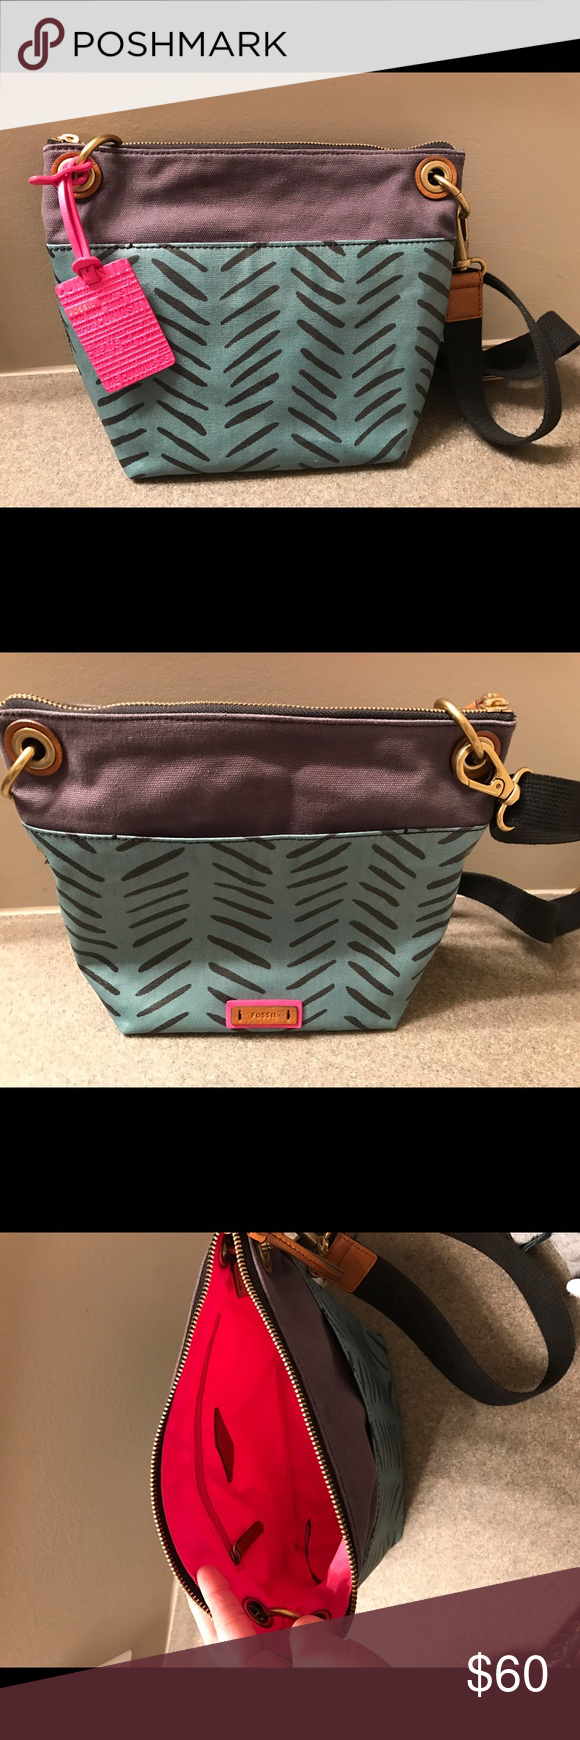 Fossil Crossbody Excellent like new condition.  Only used a couple of times.  Last photo is to show style only--color is that of first three pictures. Fossil Bags Crossbody Bags